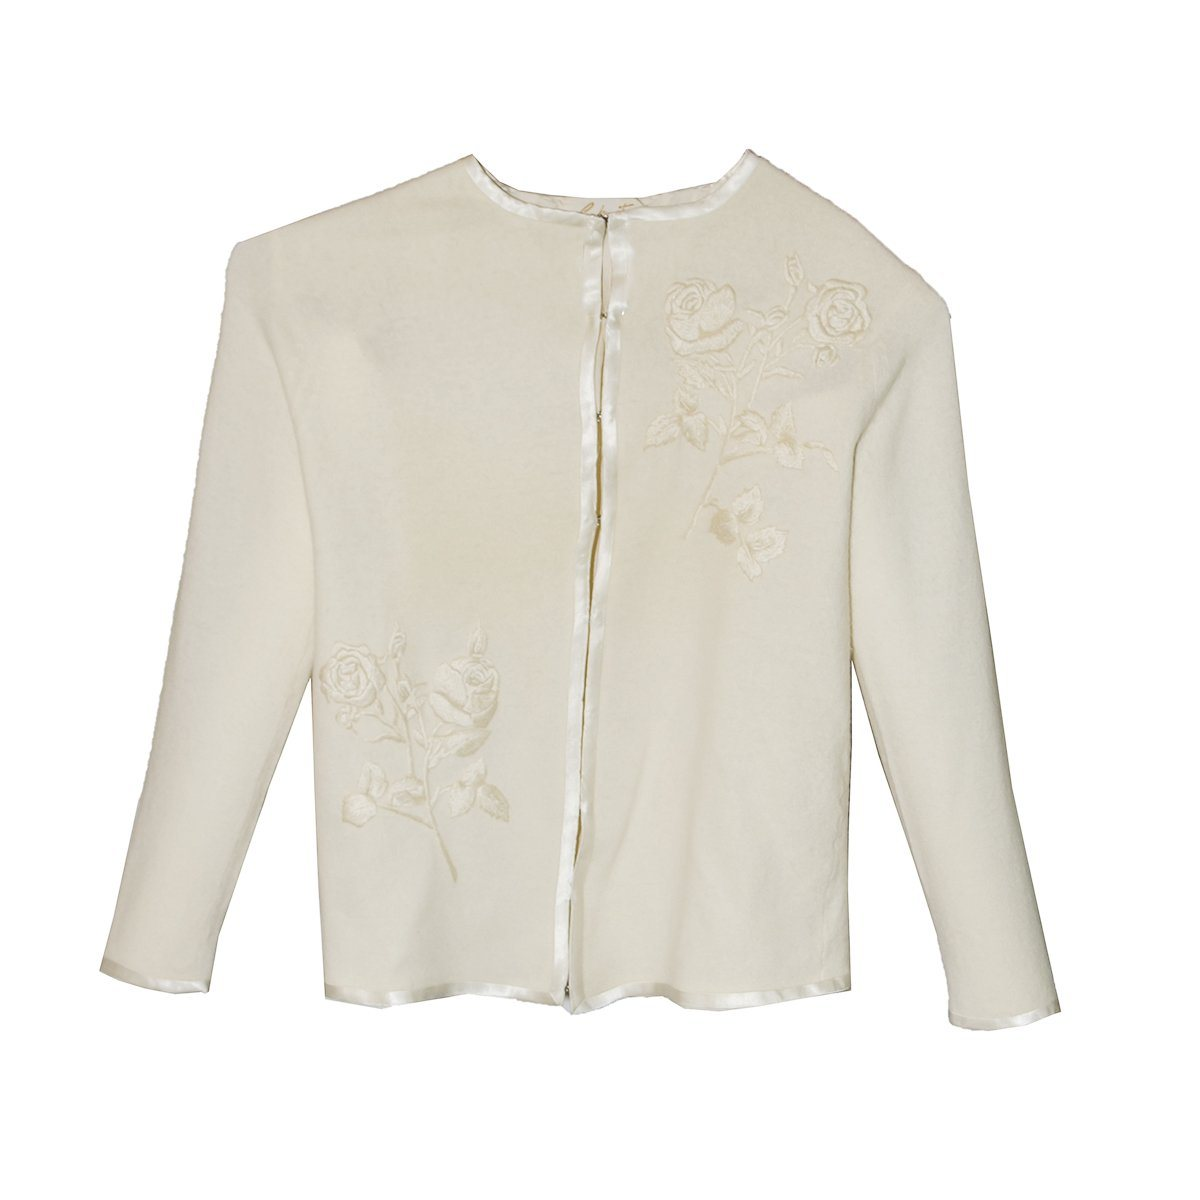 Sakowitz Vintage 60s Cream Cardigan Sweater, Large Embroidered Roses